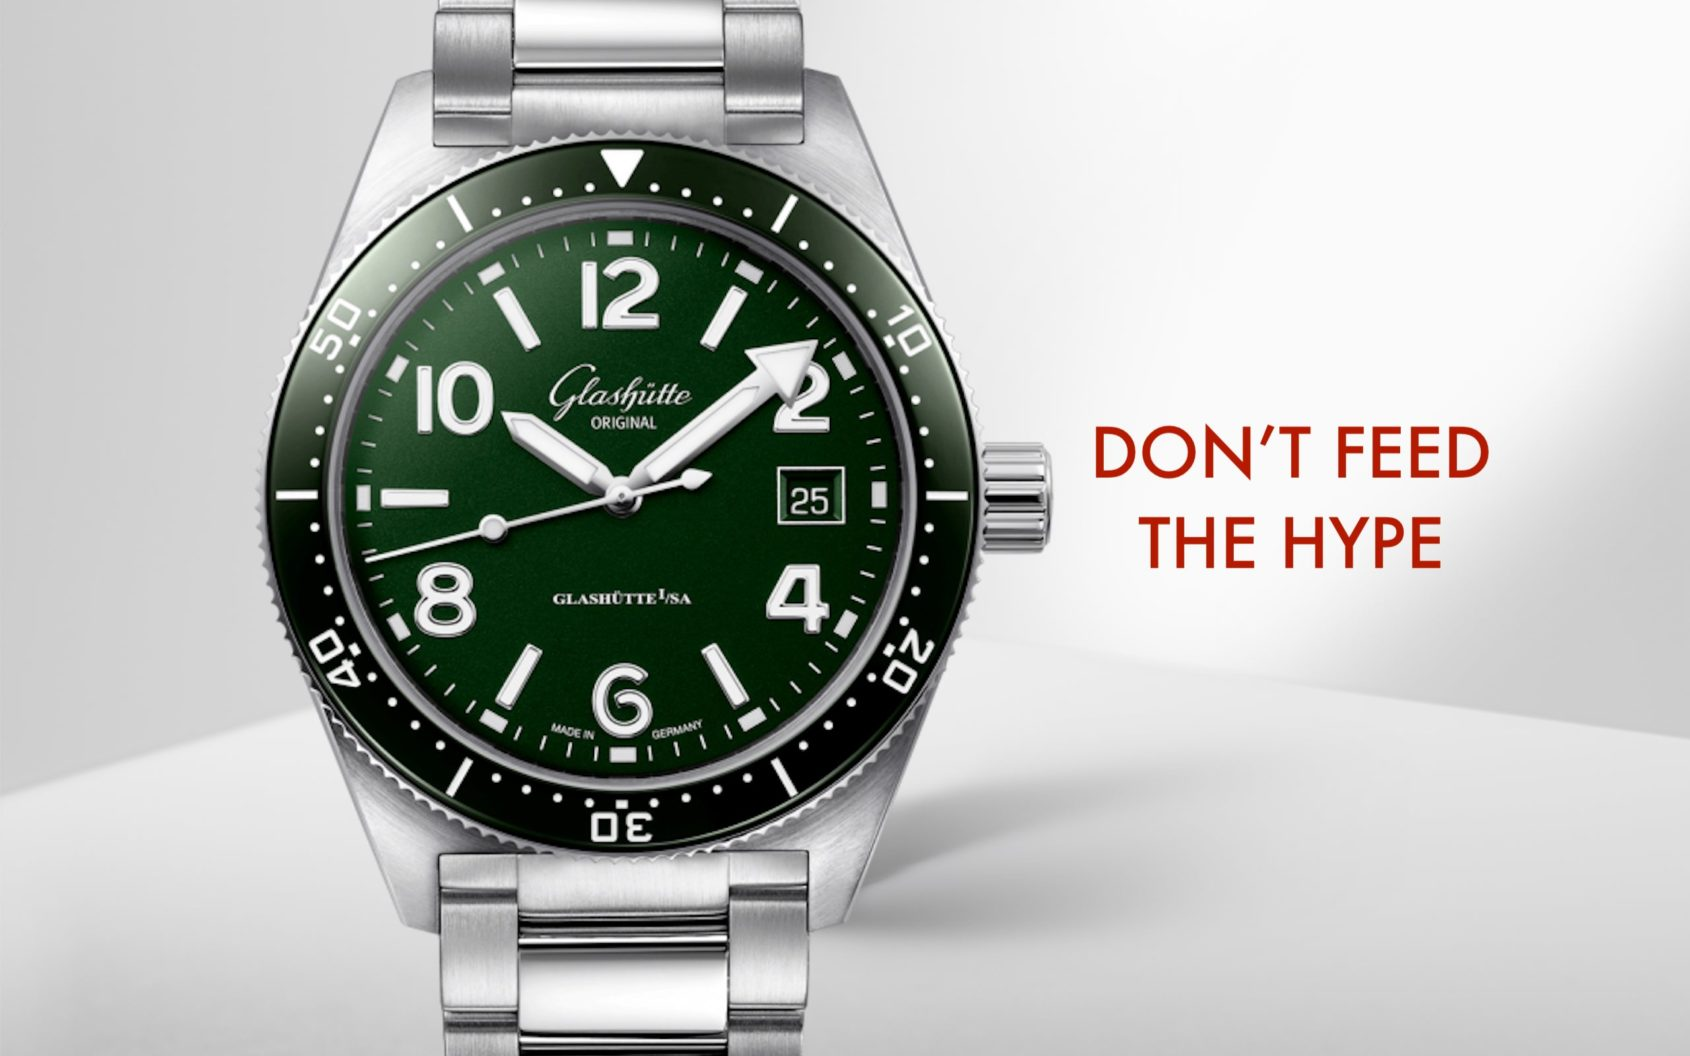 DON'T FEED THE HYPE: 6 alternatives to the Rolex Submariner